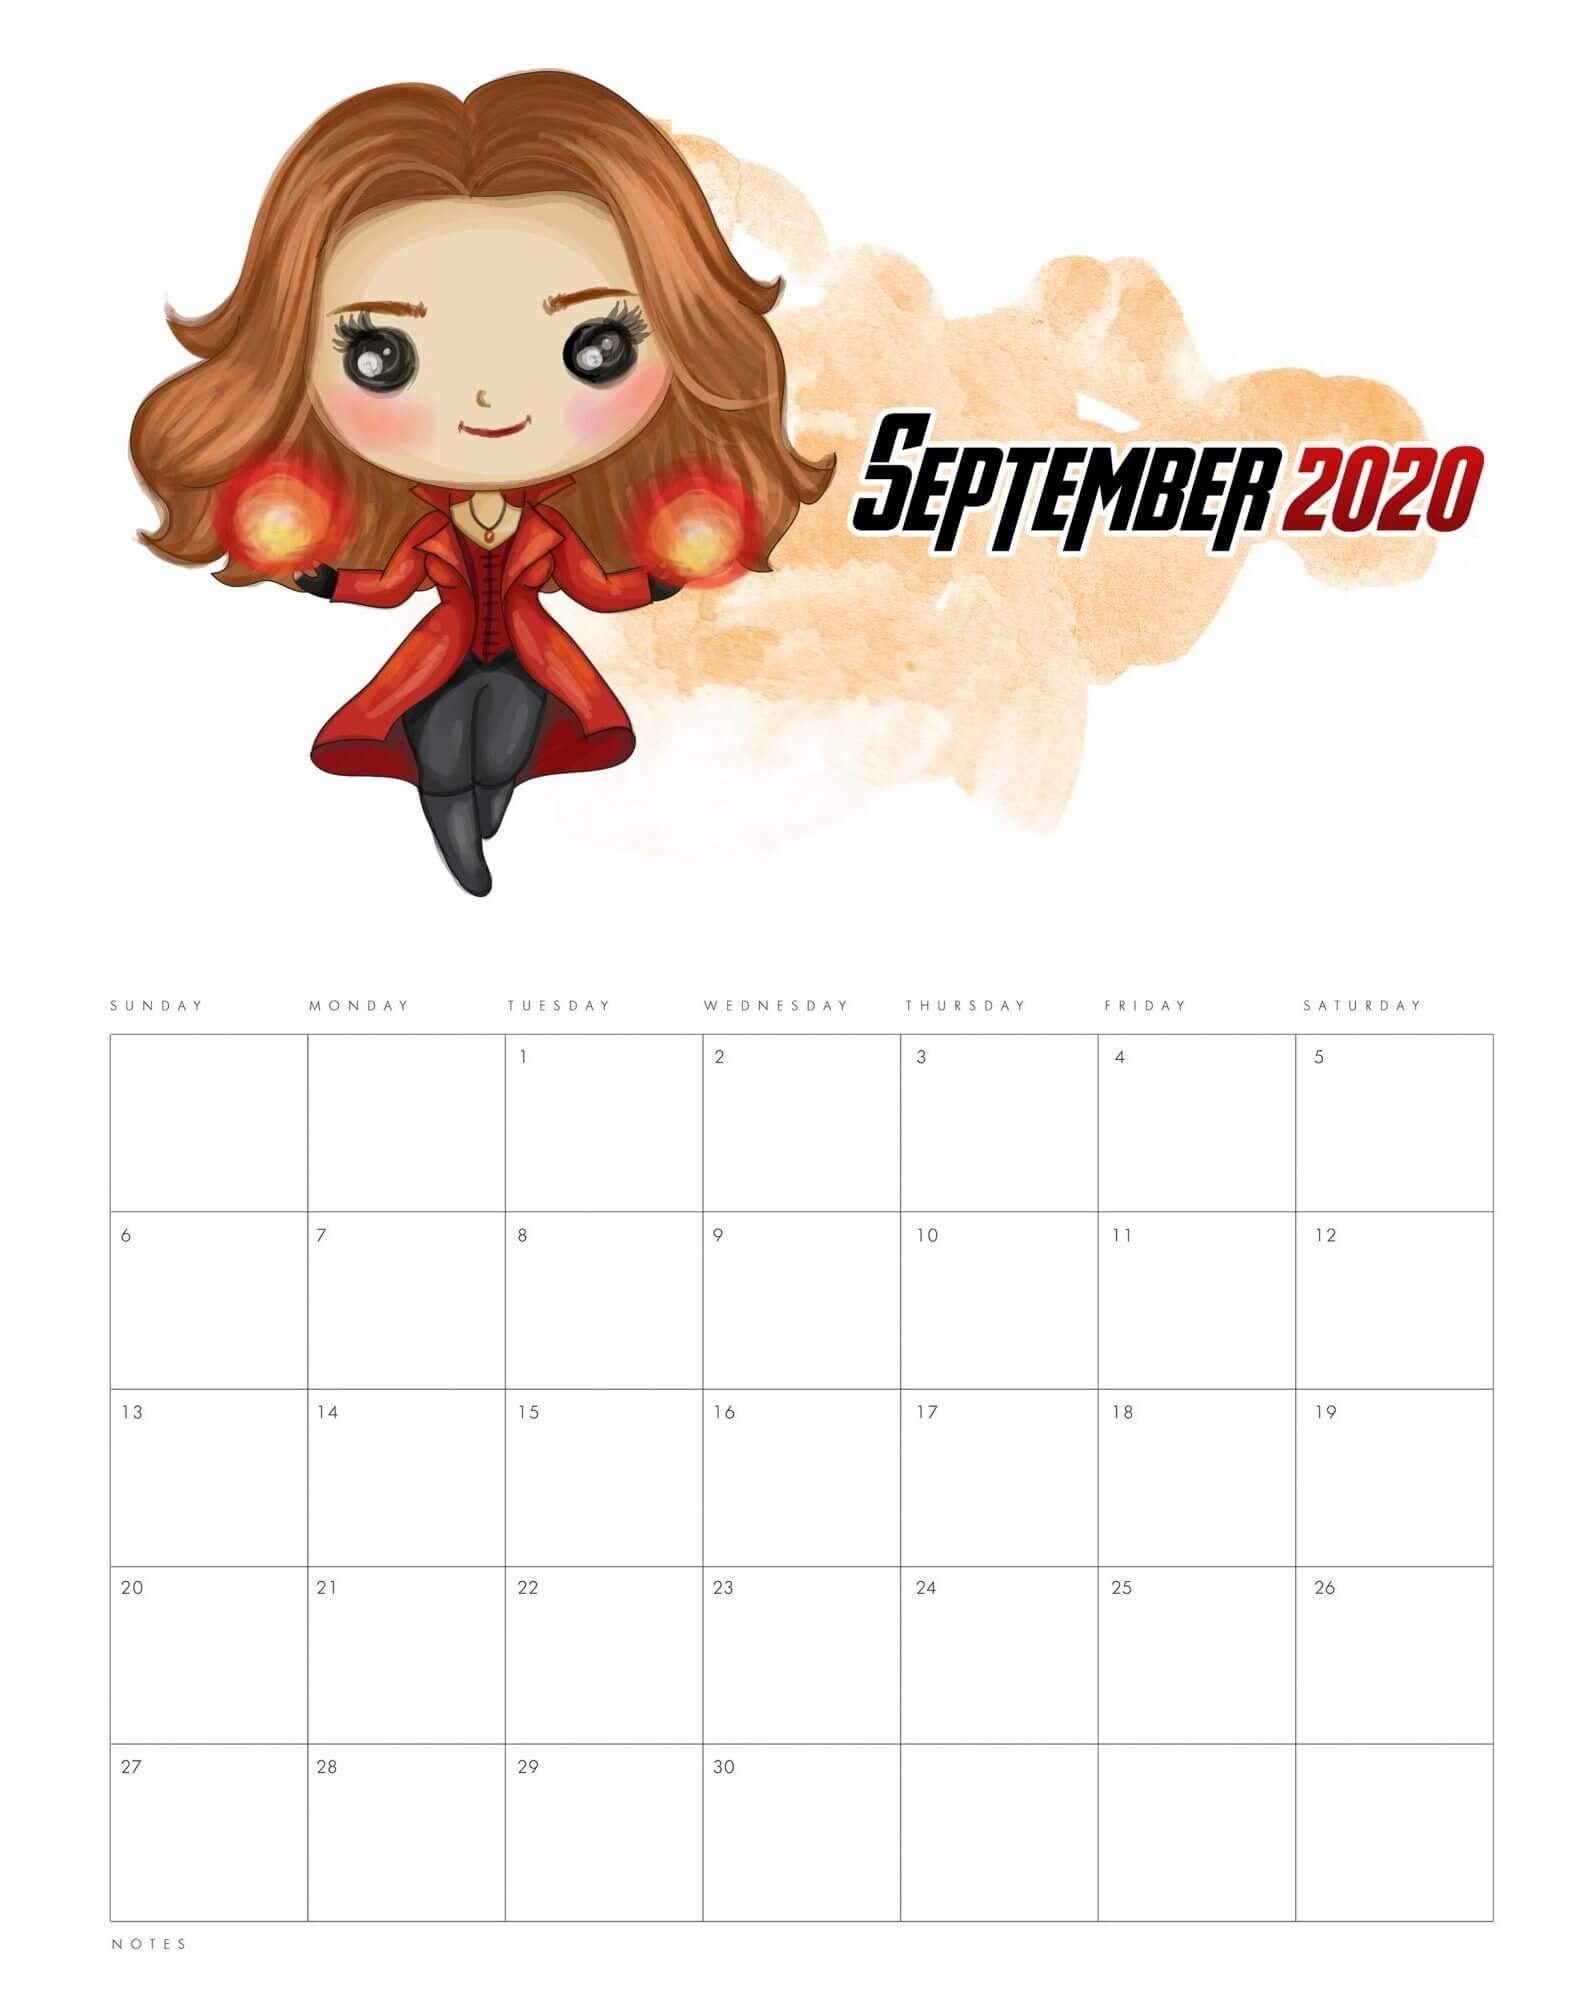 2020 September Calendar Cute in 2020 Avengers, Free